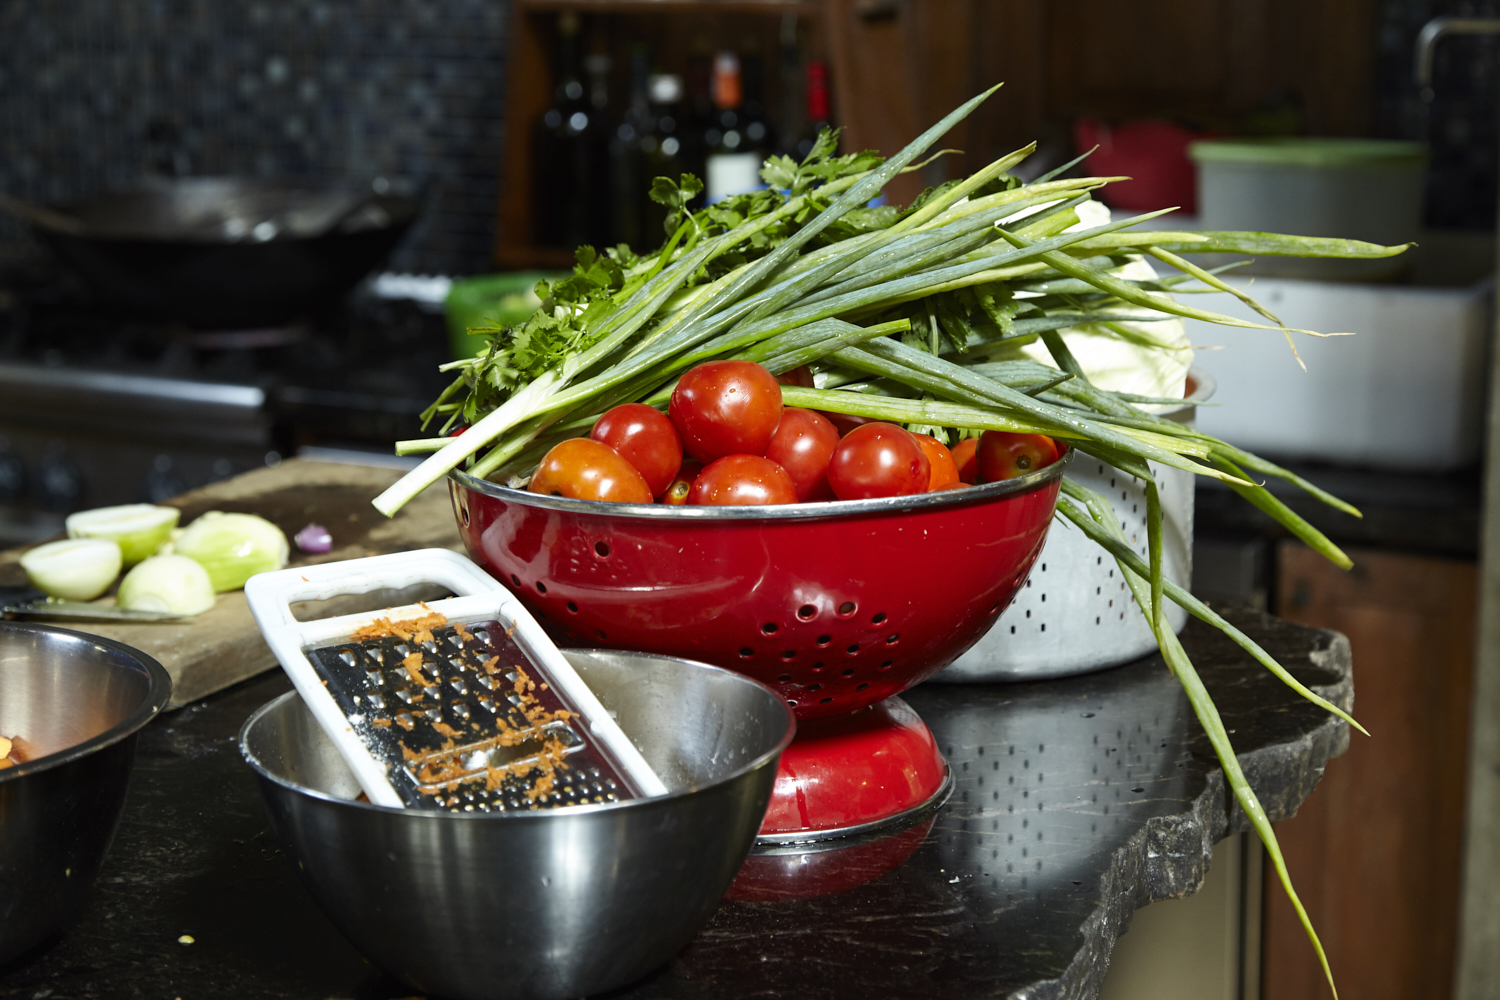 We use local and tasty raw material when we cook